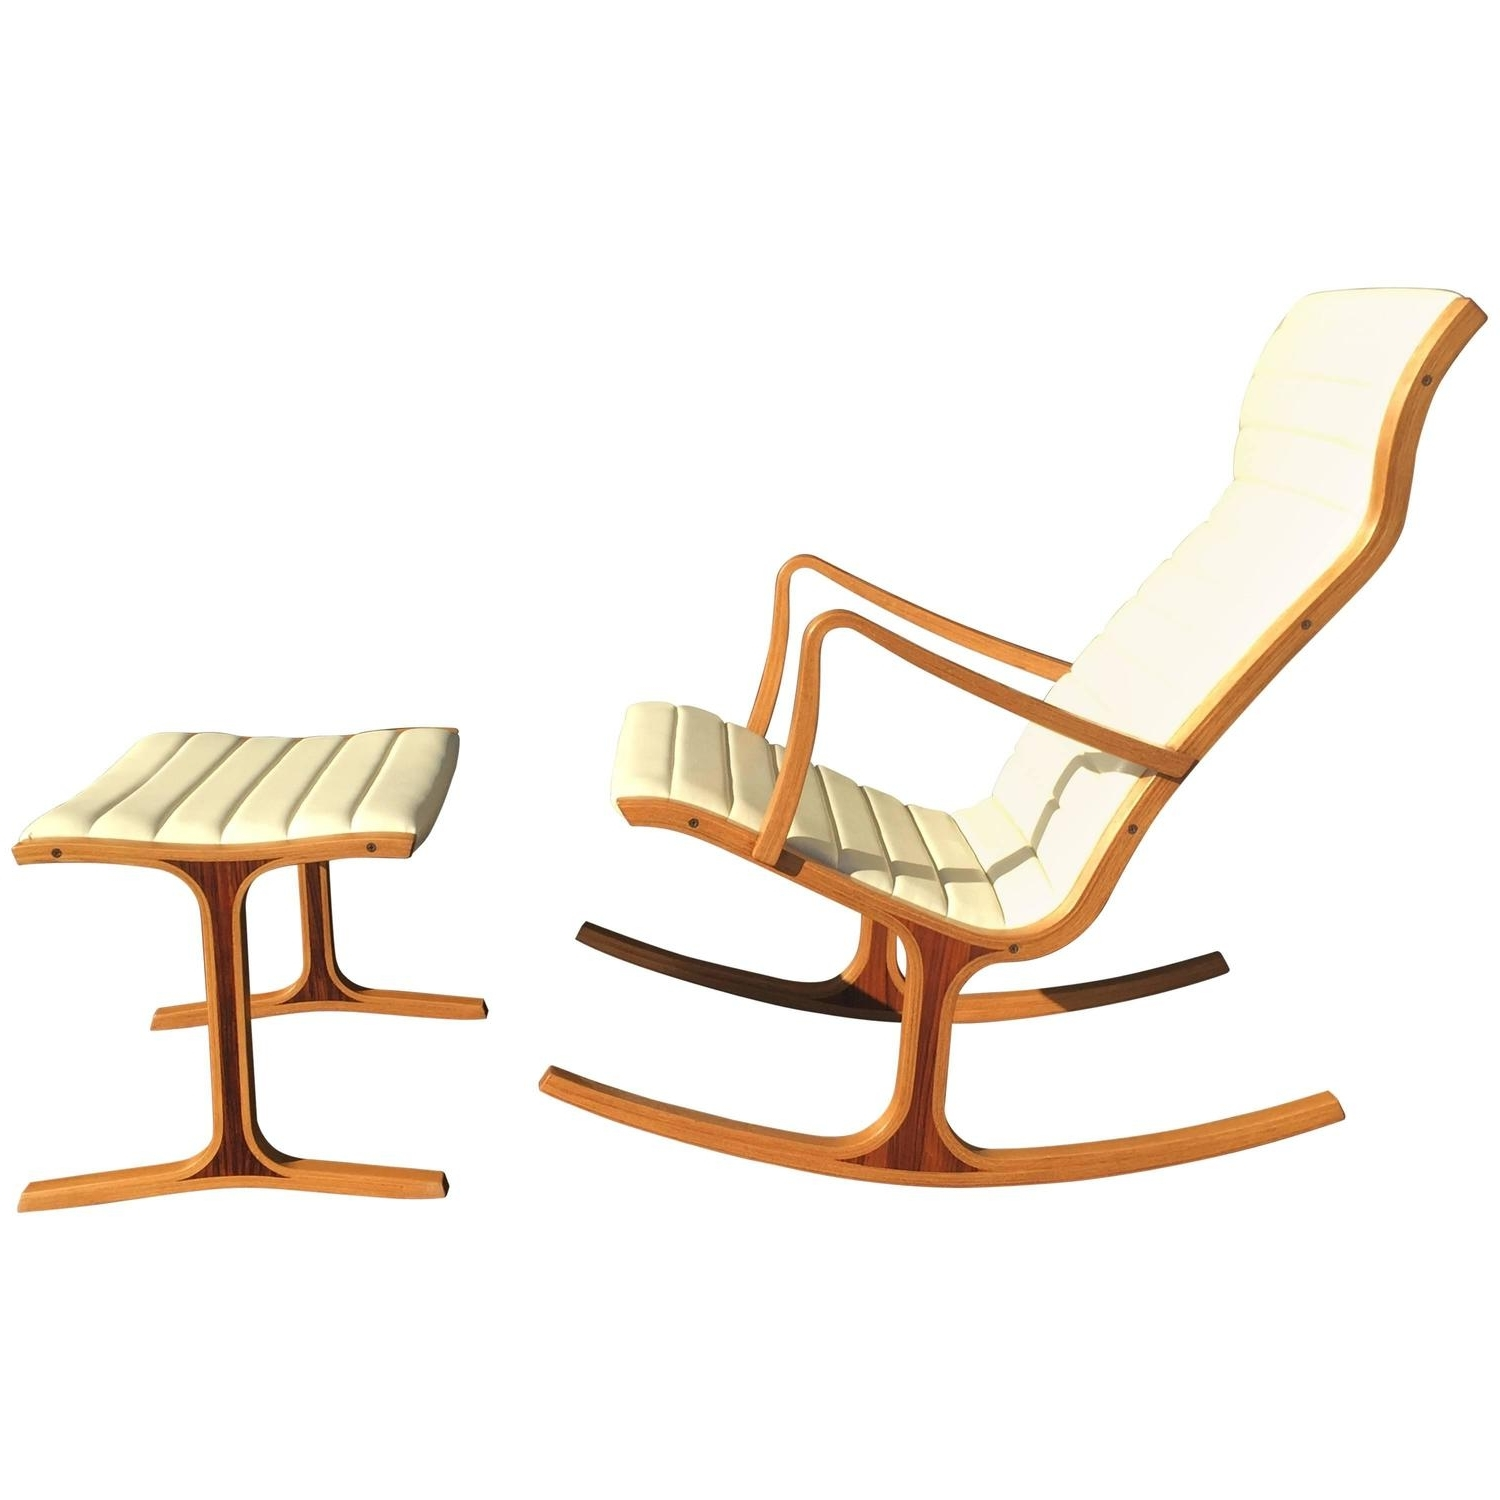 Tendo Mokko Heron Rocking Chair And Footrest For Kosuga Japan At 1stdibs In Trendy Rocking Chairs With Footrest (View 4 of 20)